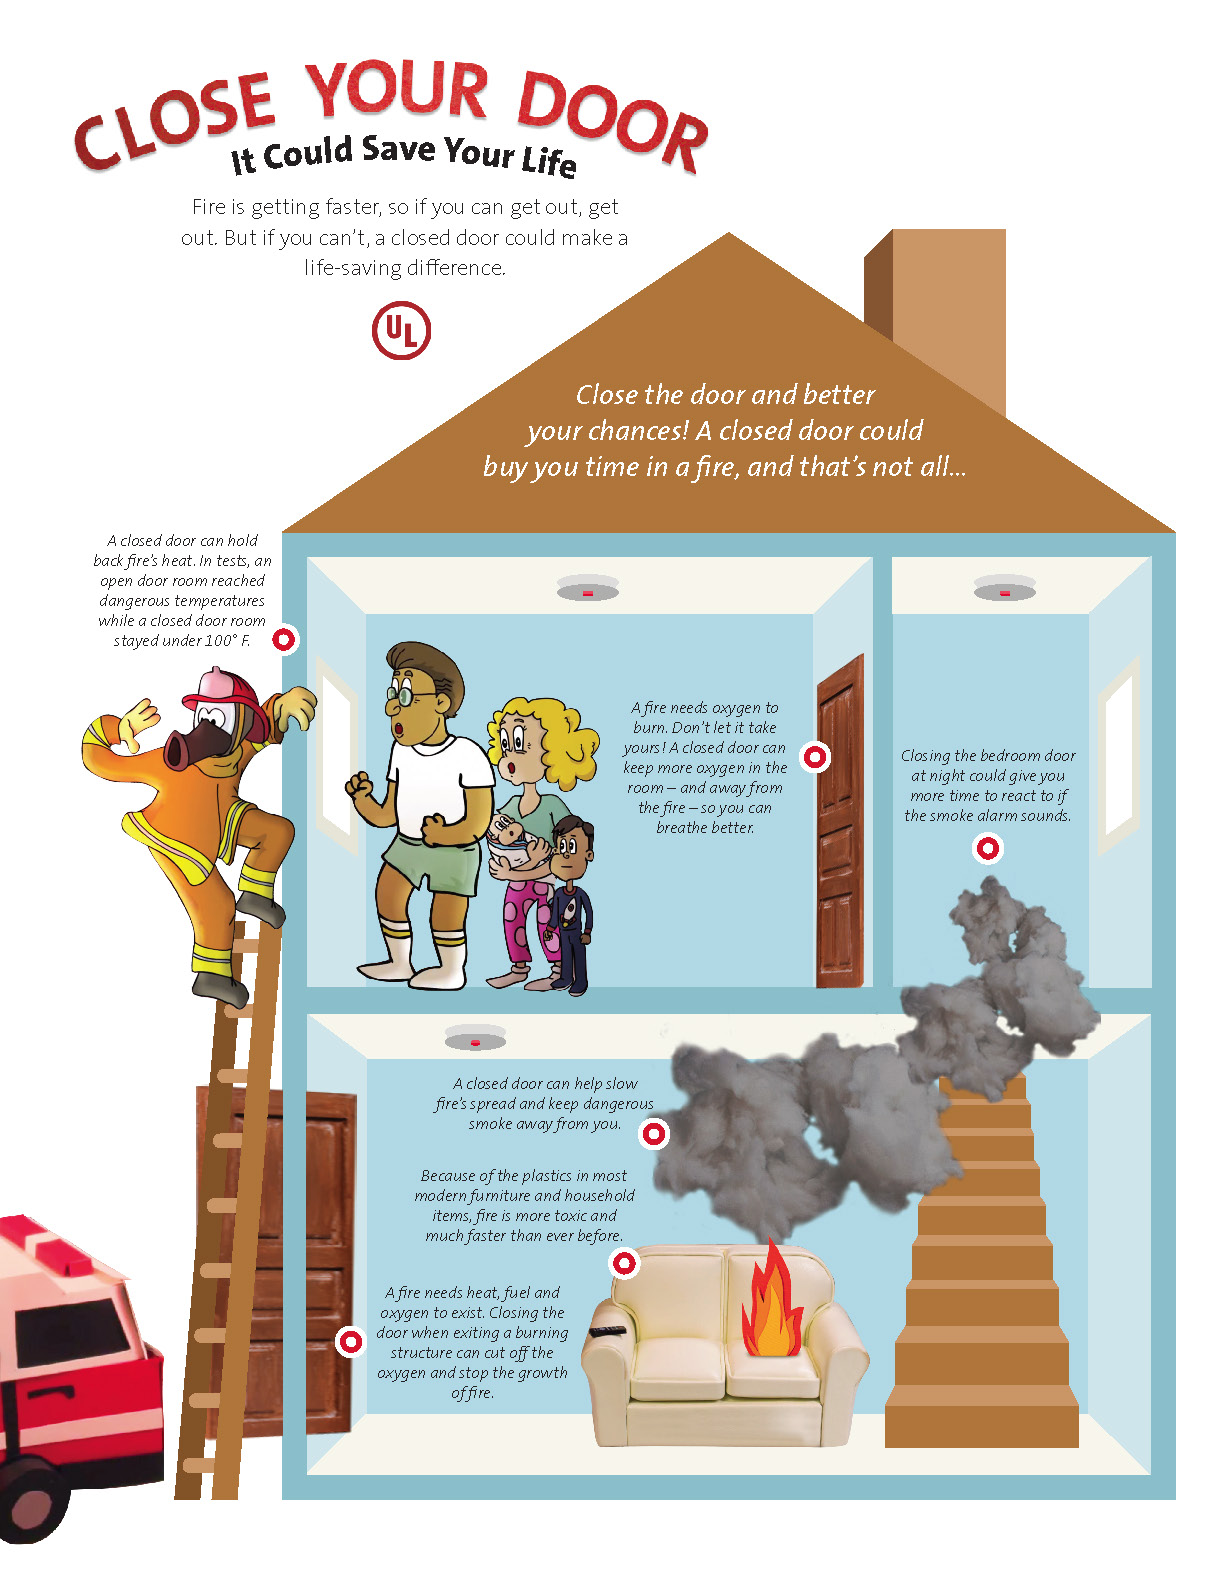 Close Your Door Flyer with information about the importance of closing your door during a fire